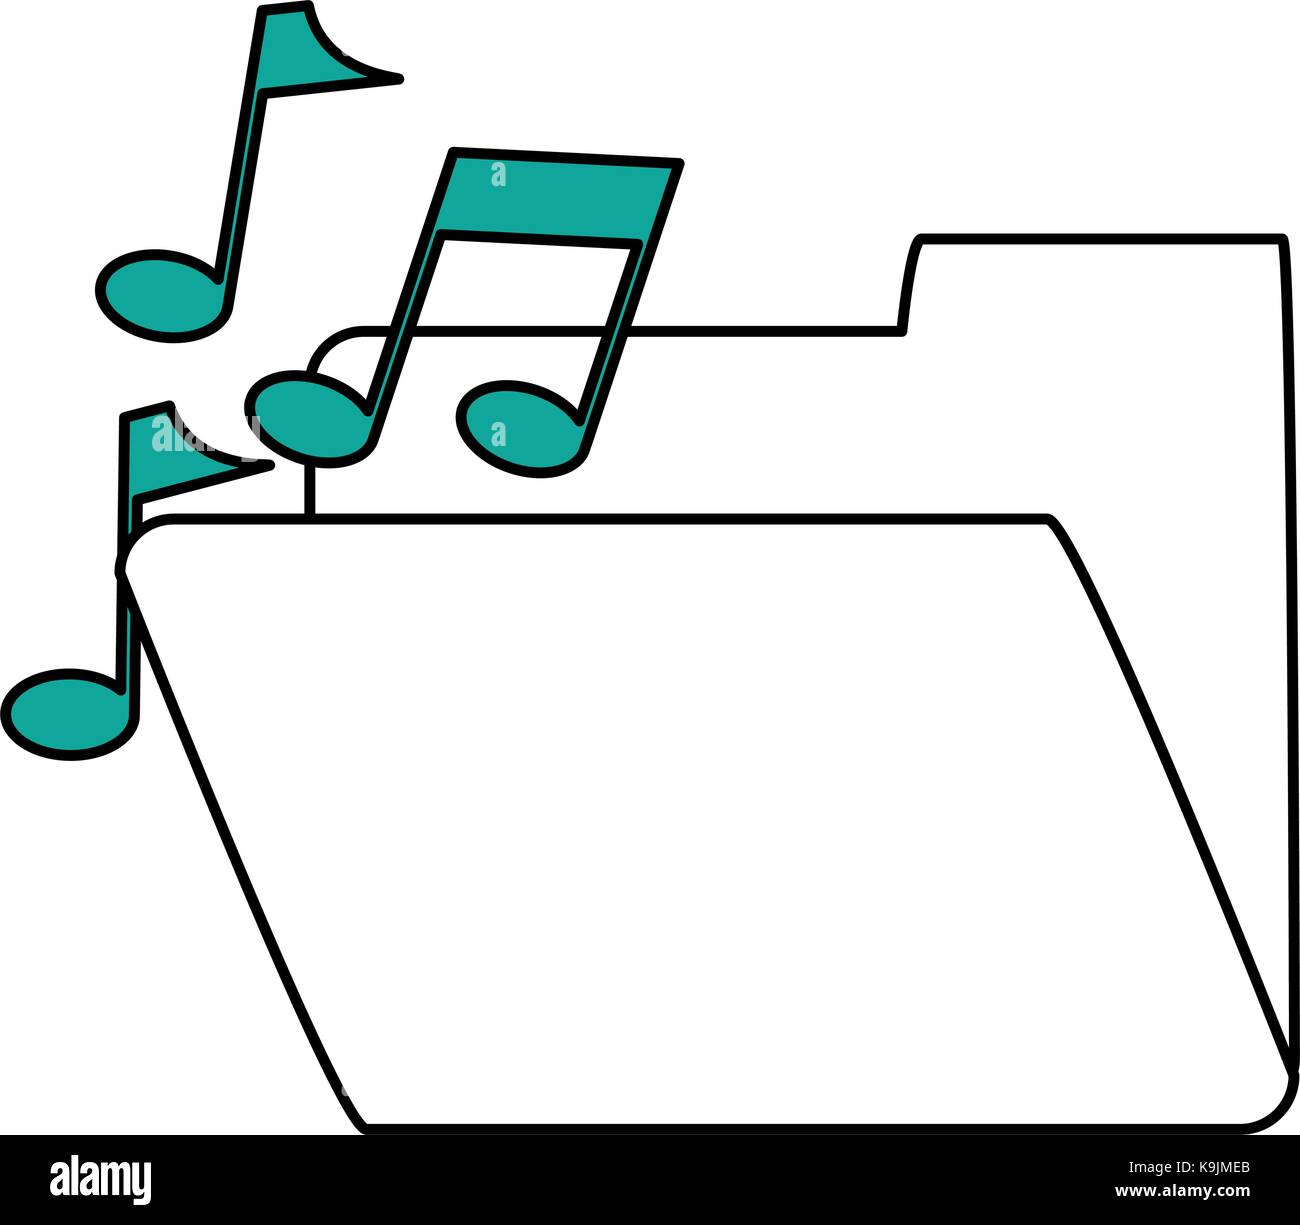 Music playlist folder - Stock Image